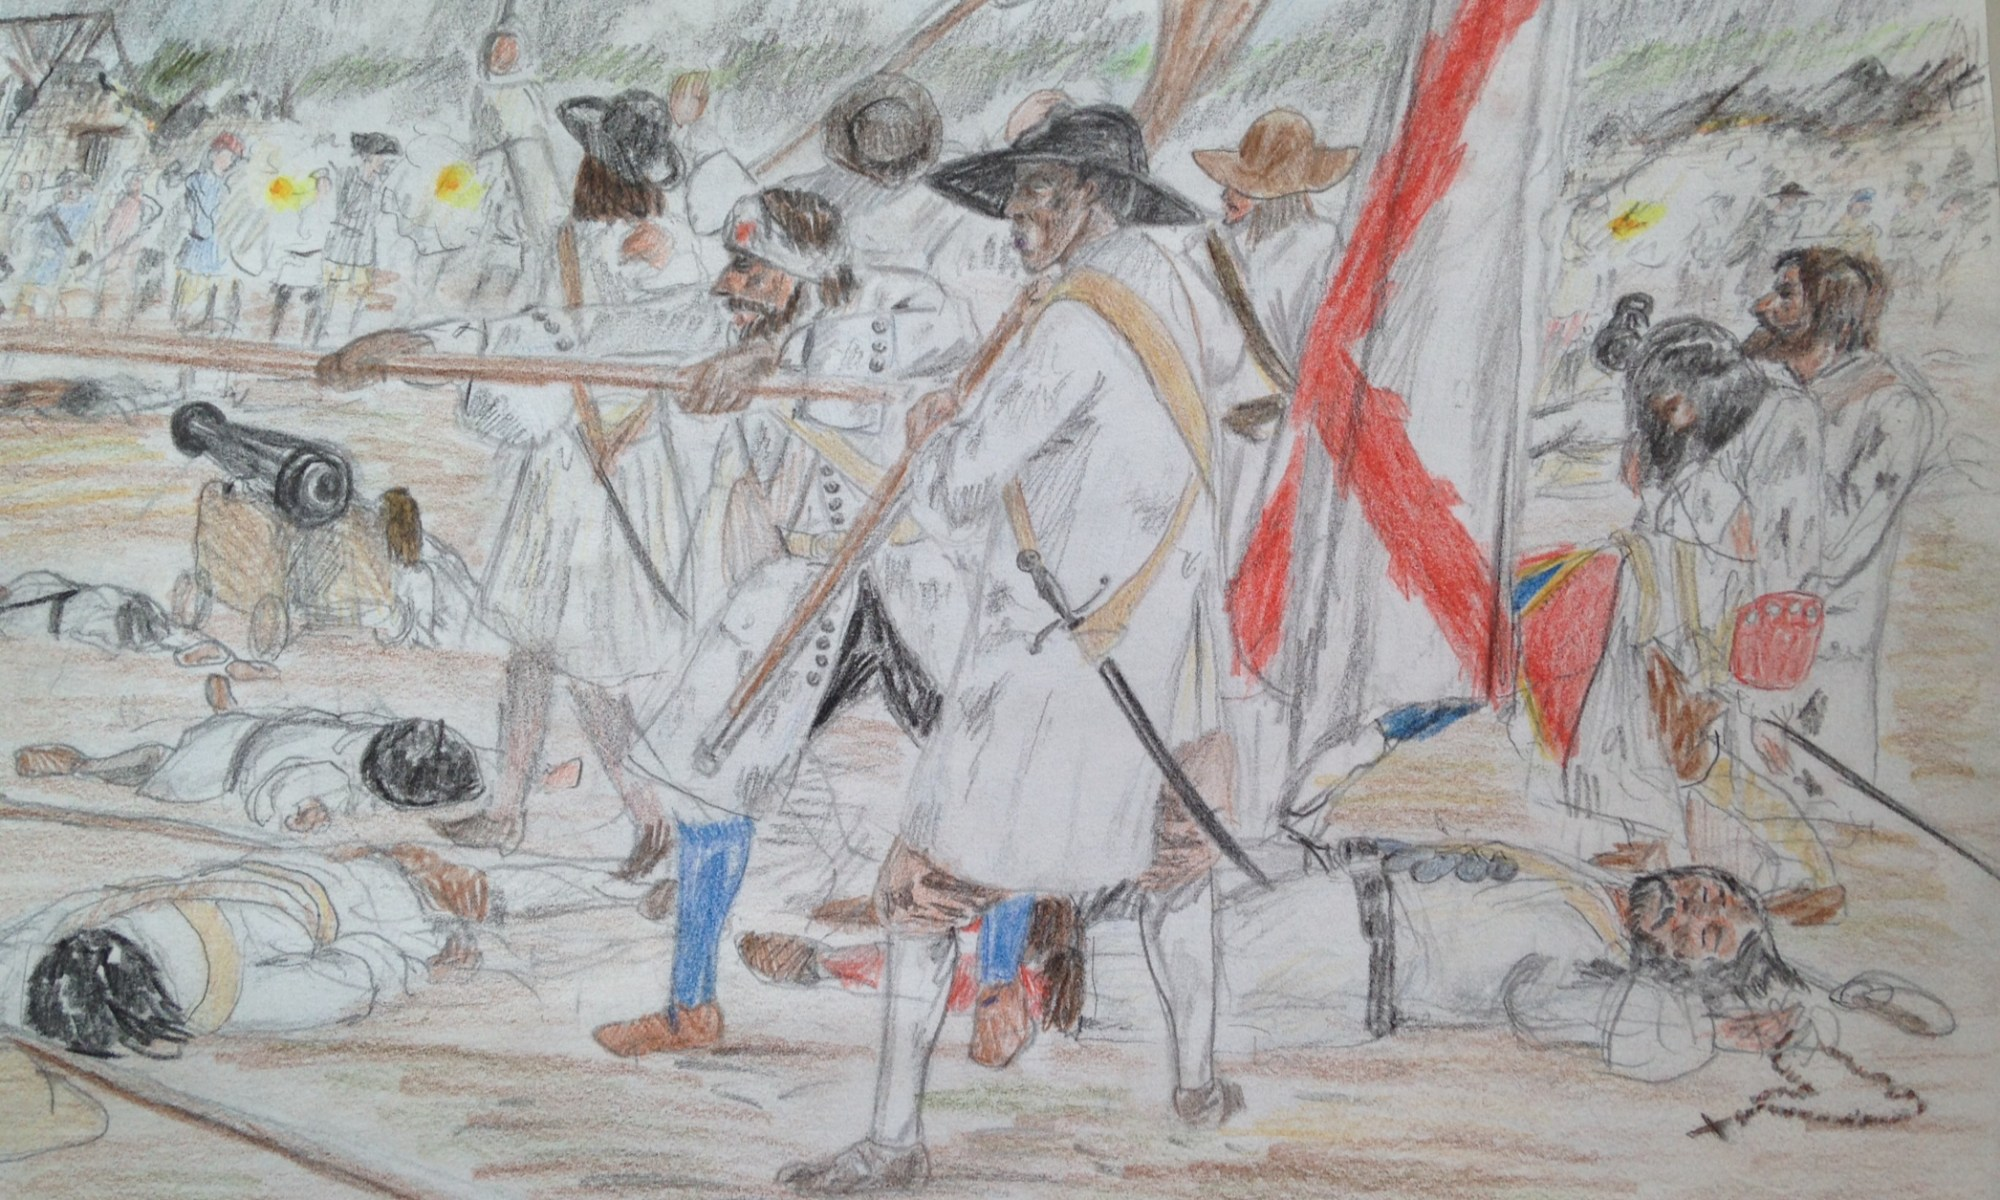 Last stand at San Lorenzo. The Spanish garrison go down fighting. By the author